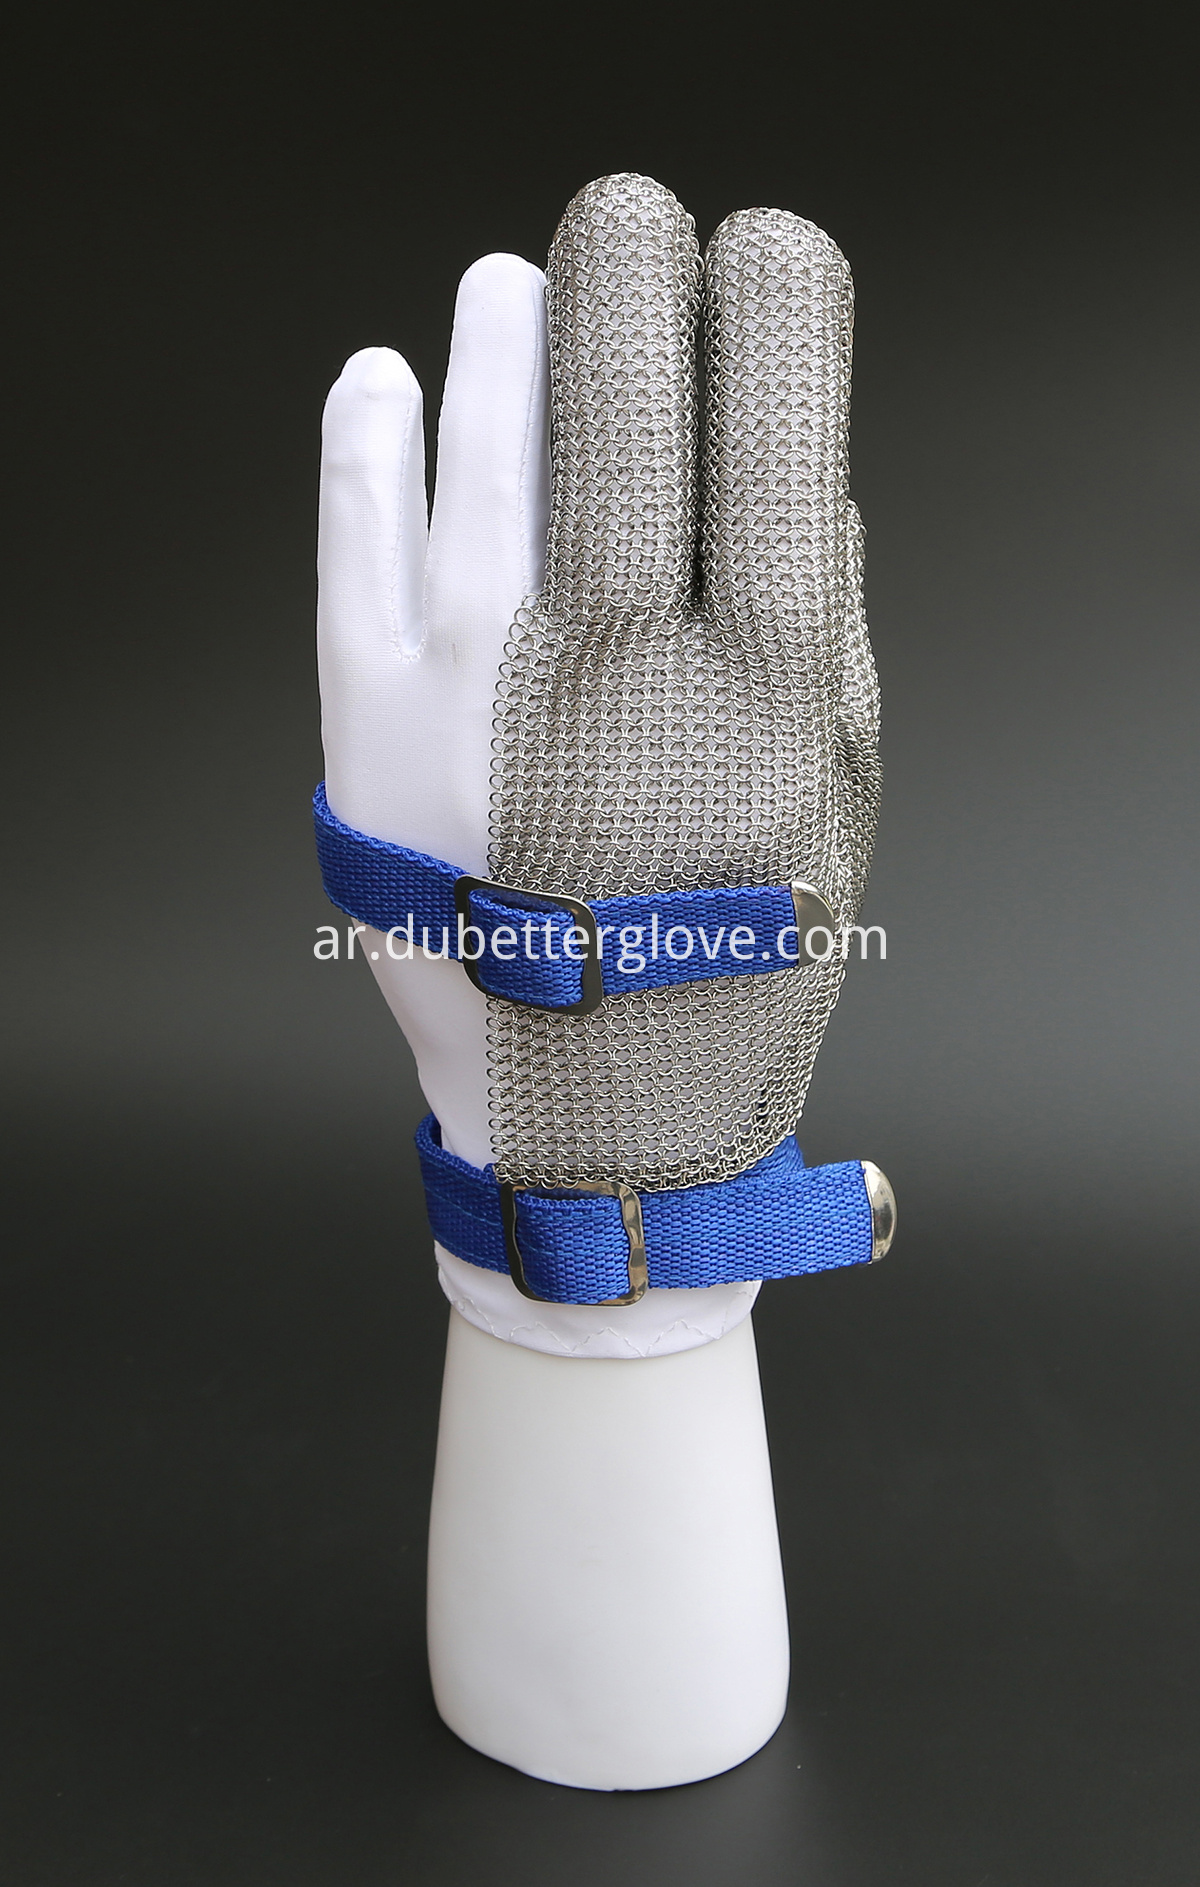 Dubetter stainless steel mesh gloves